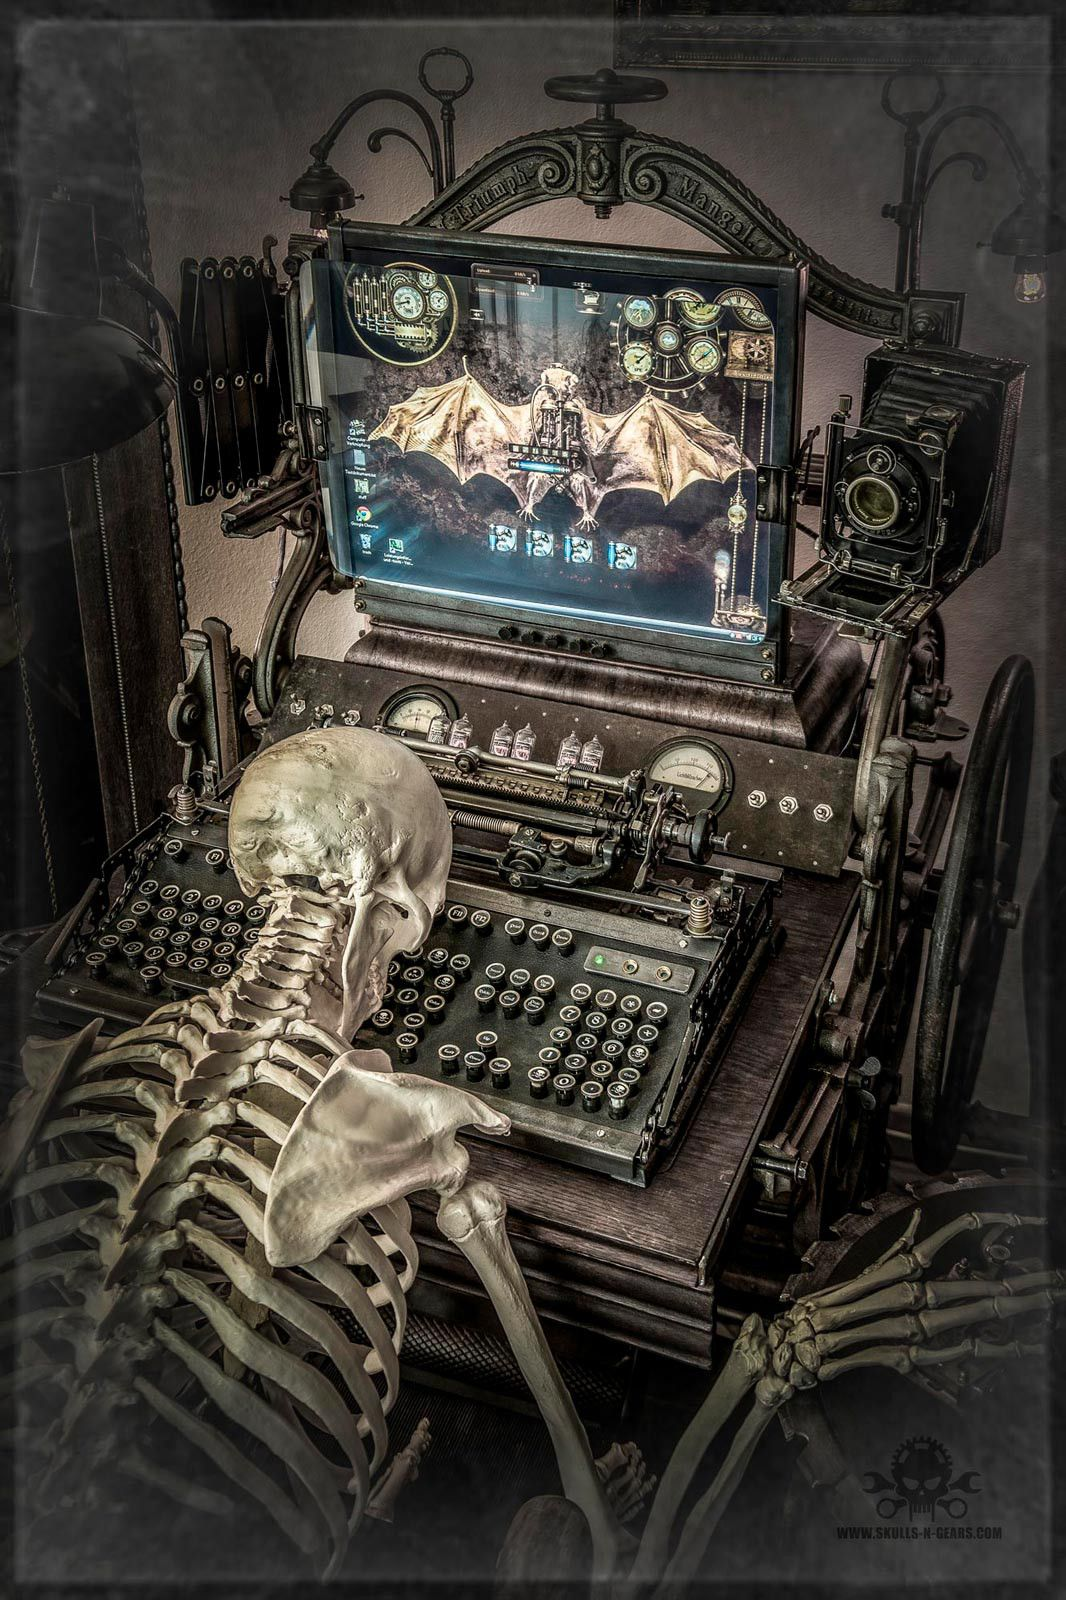 Dead Man Working - [ DMW-01 ] Steampunk Artwork - Photography, art print on canvas 120x80 cm by skulls-n-gears